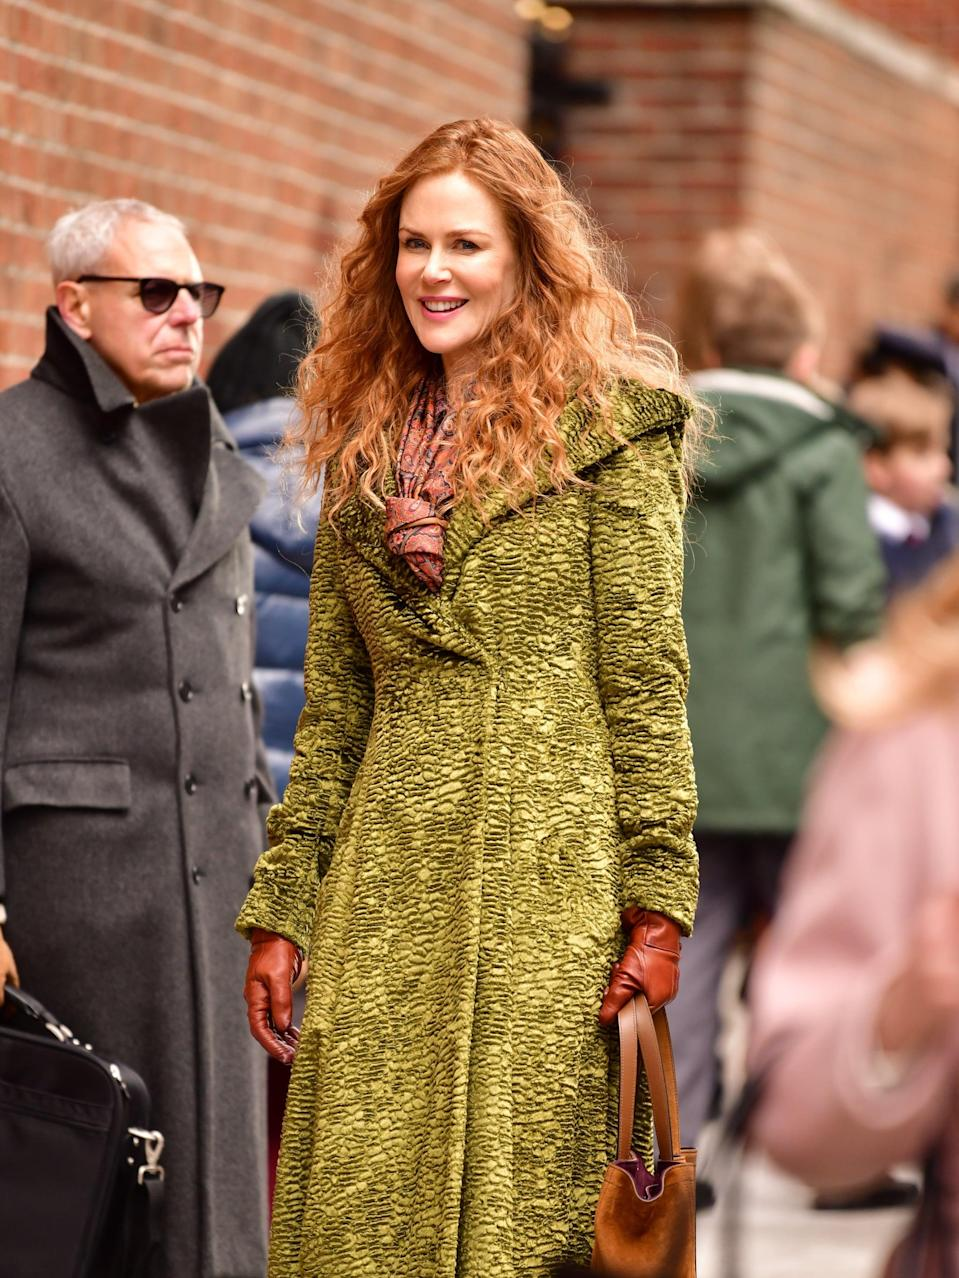 <p>Although Grace never wears it, the coat has a large hood, which gives it a witchy vibe of sorts. The Sanderson sisters have nothin' on Grace Fraser.</p>